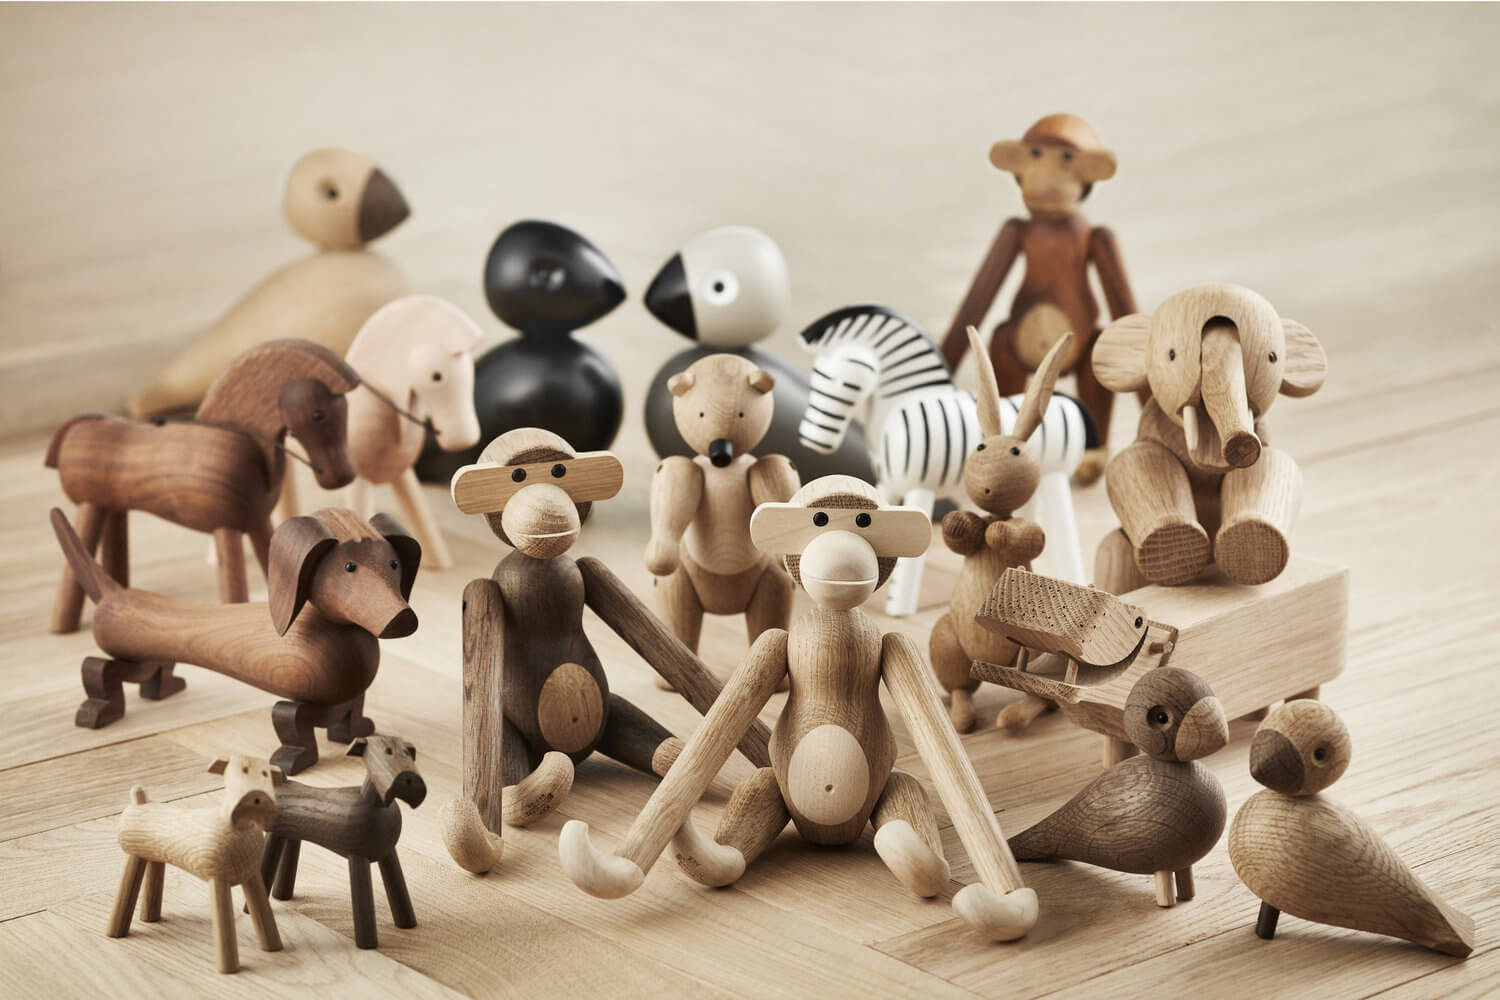 Playful Wooden Toys by Danish Designer Kay Bojesen